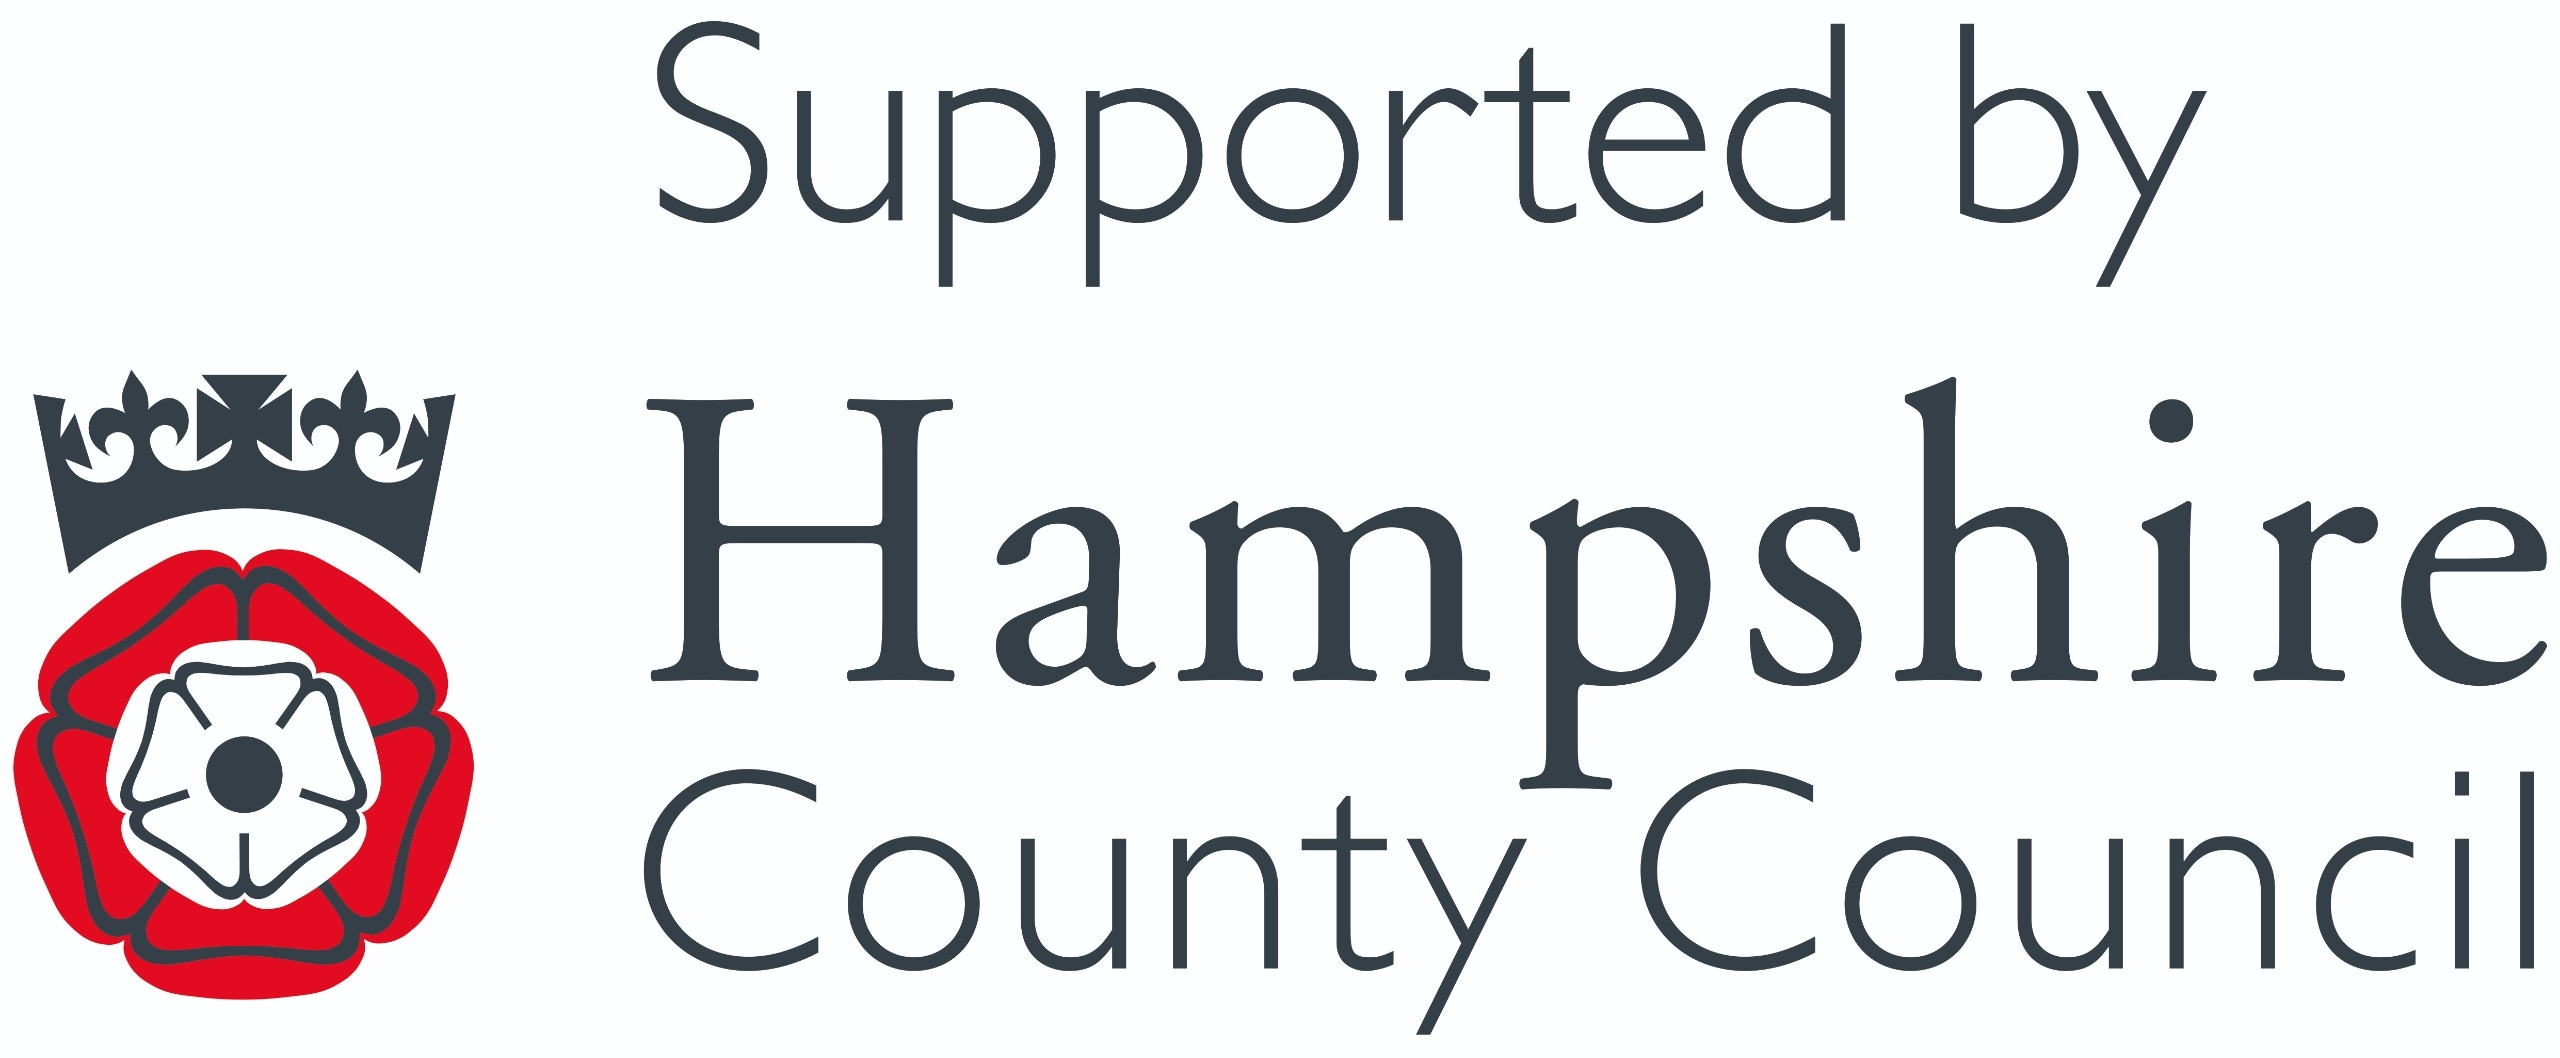 Supported by Hampshire County Council